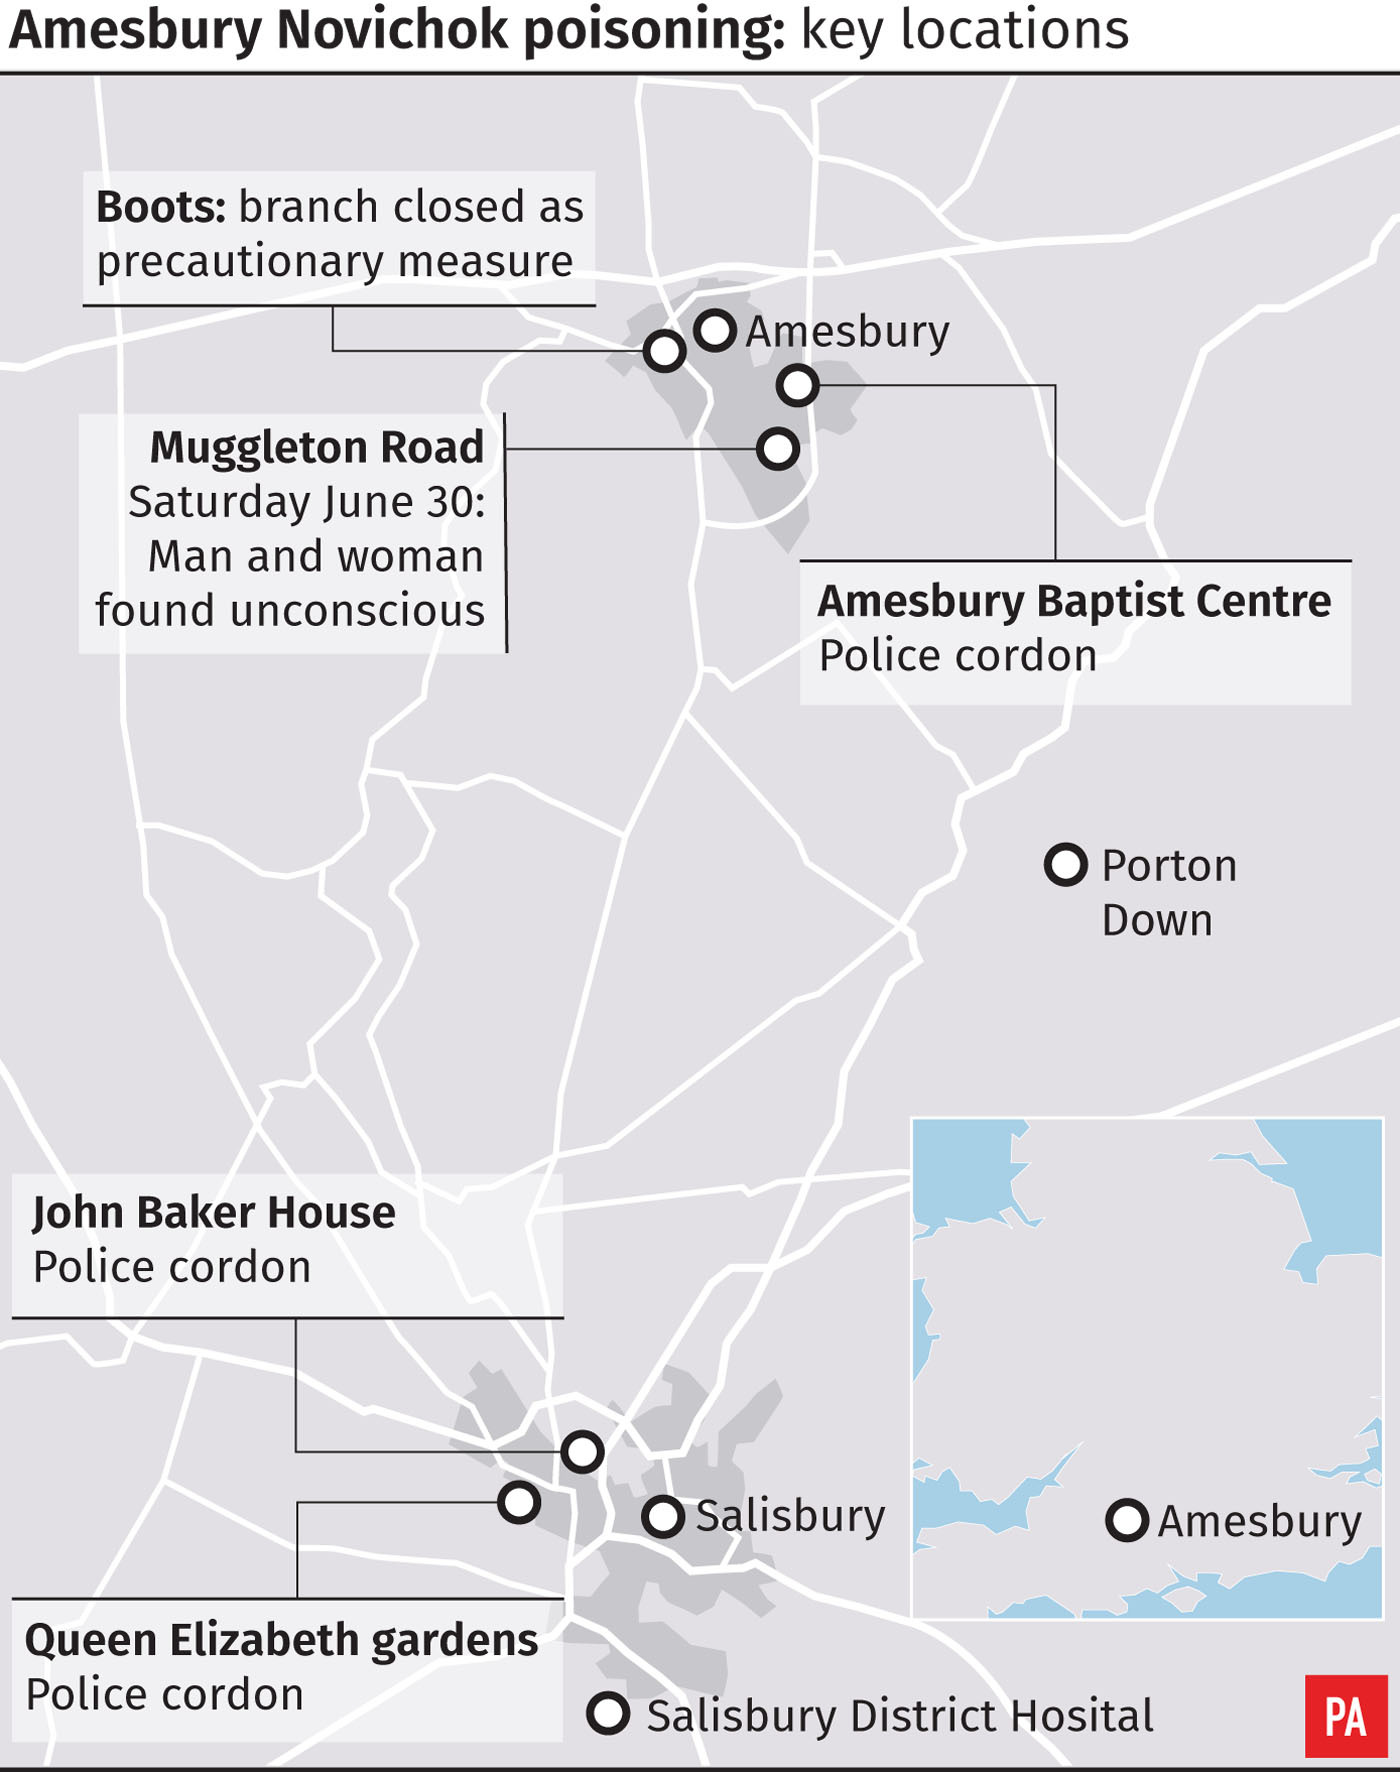 Amesbury Novichok poisoning - key locations